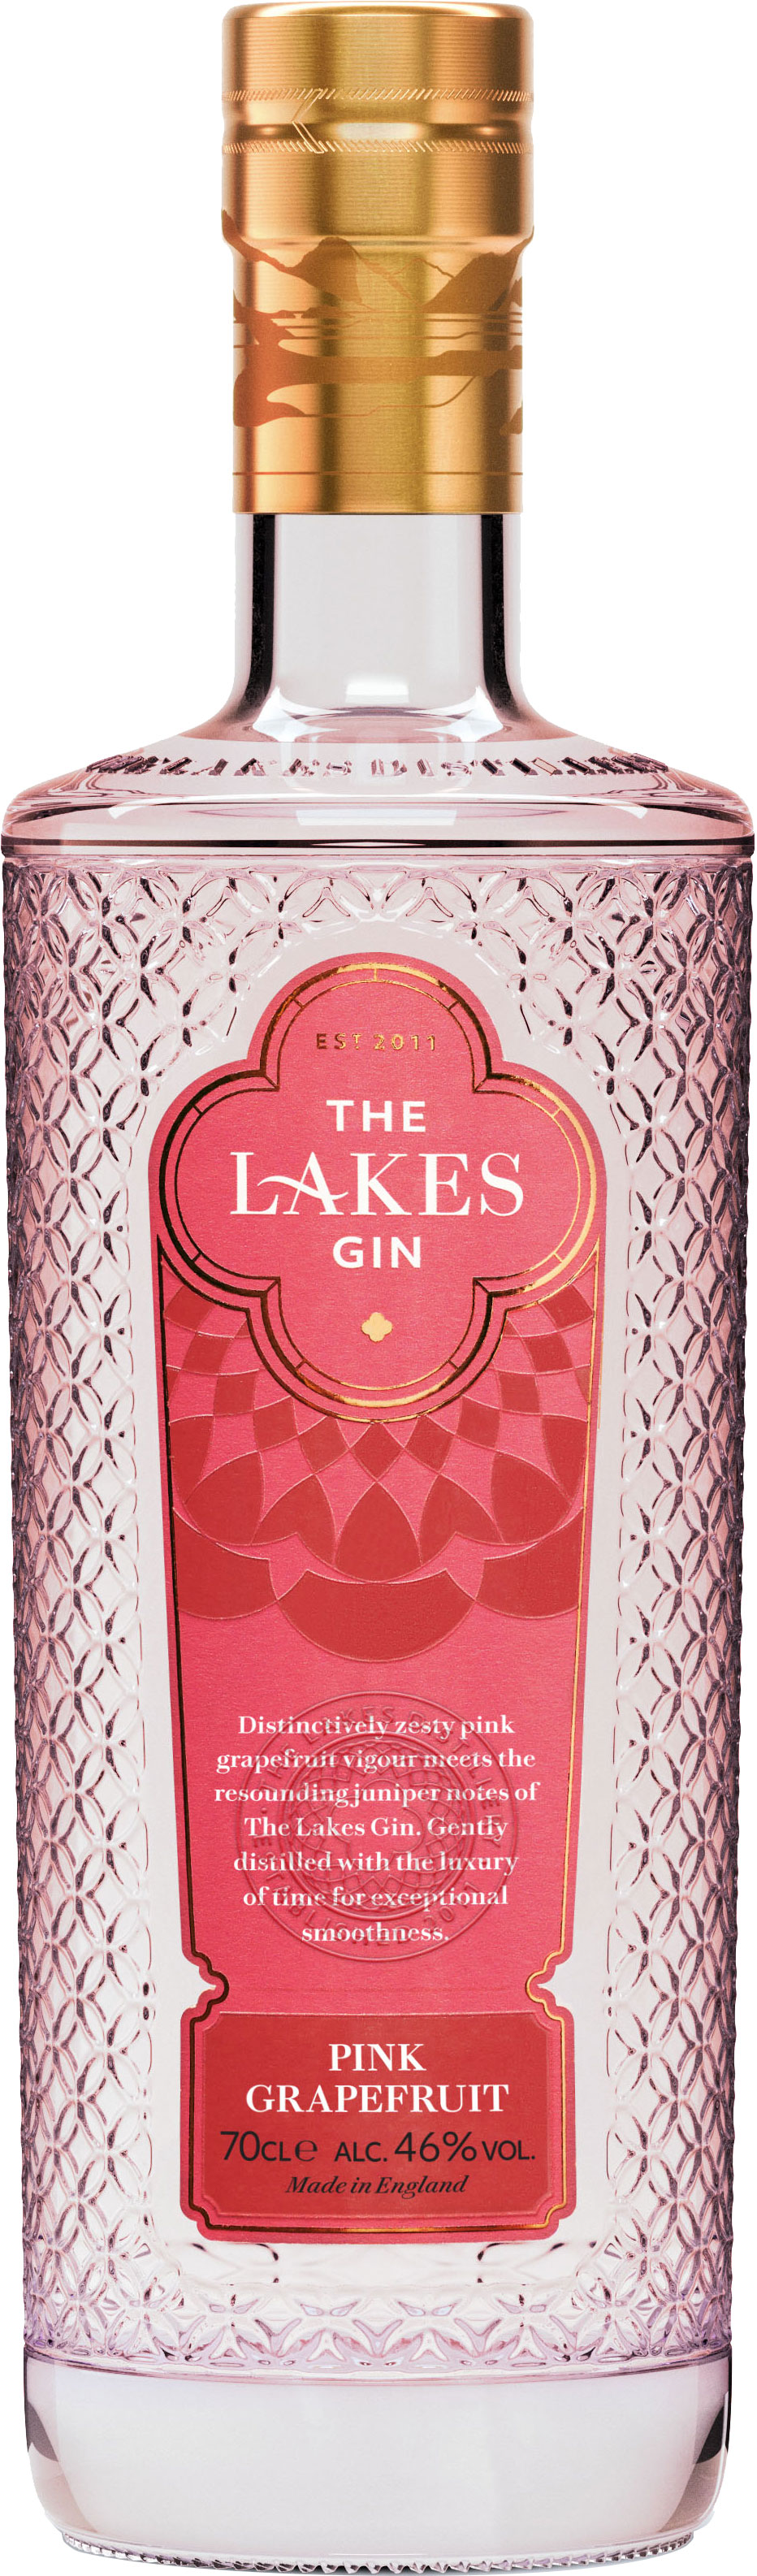 The Lakes - Pink Grapefruit Gin 70cl Bottle